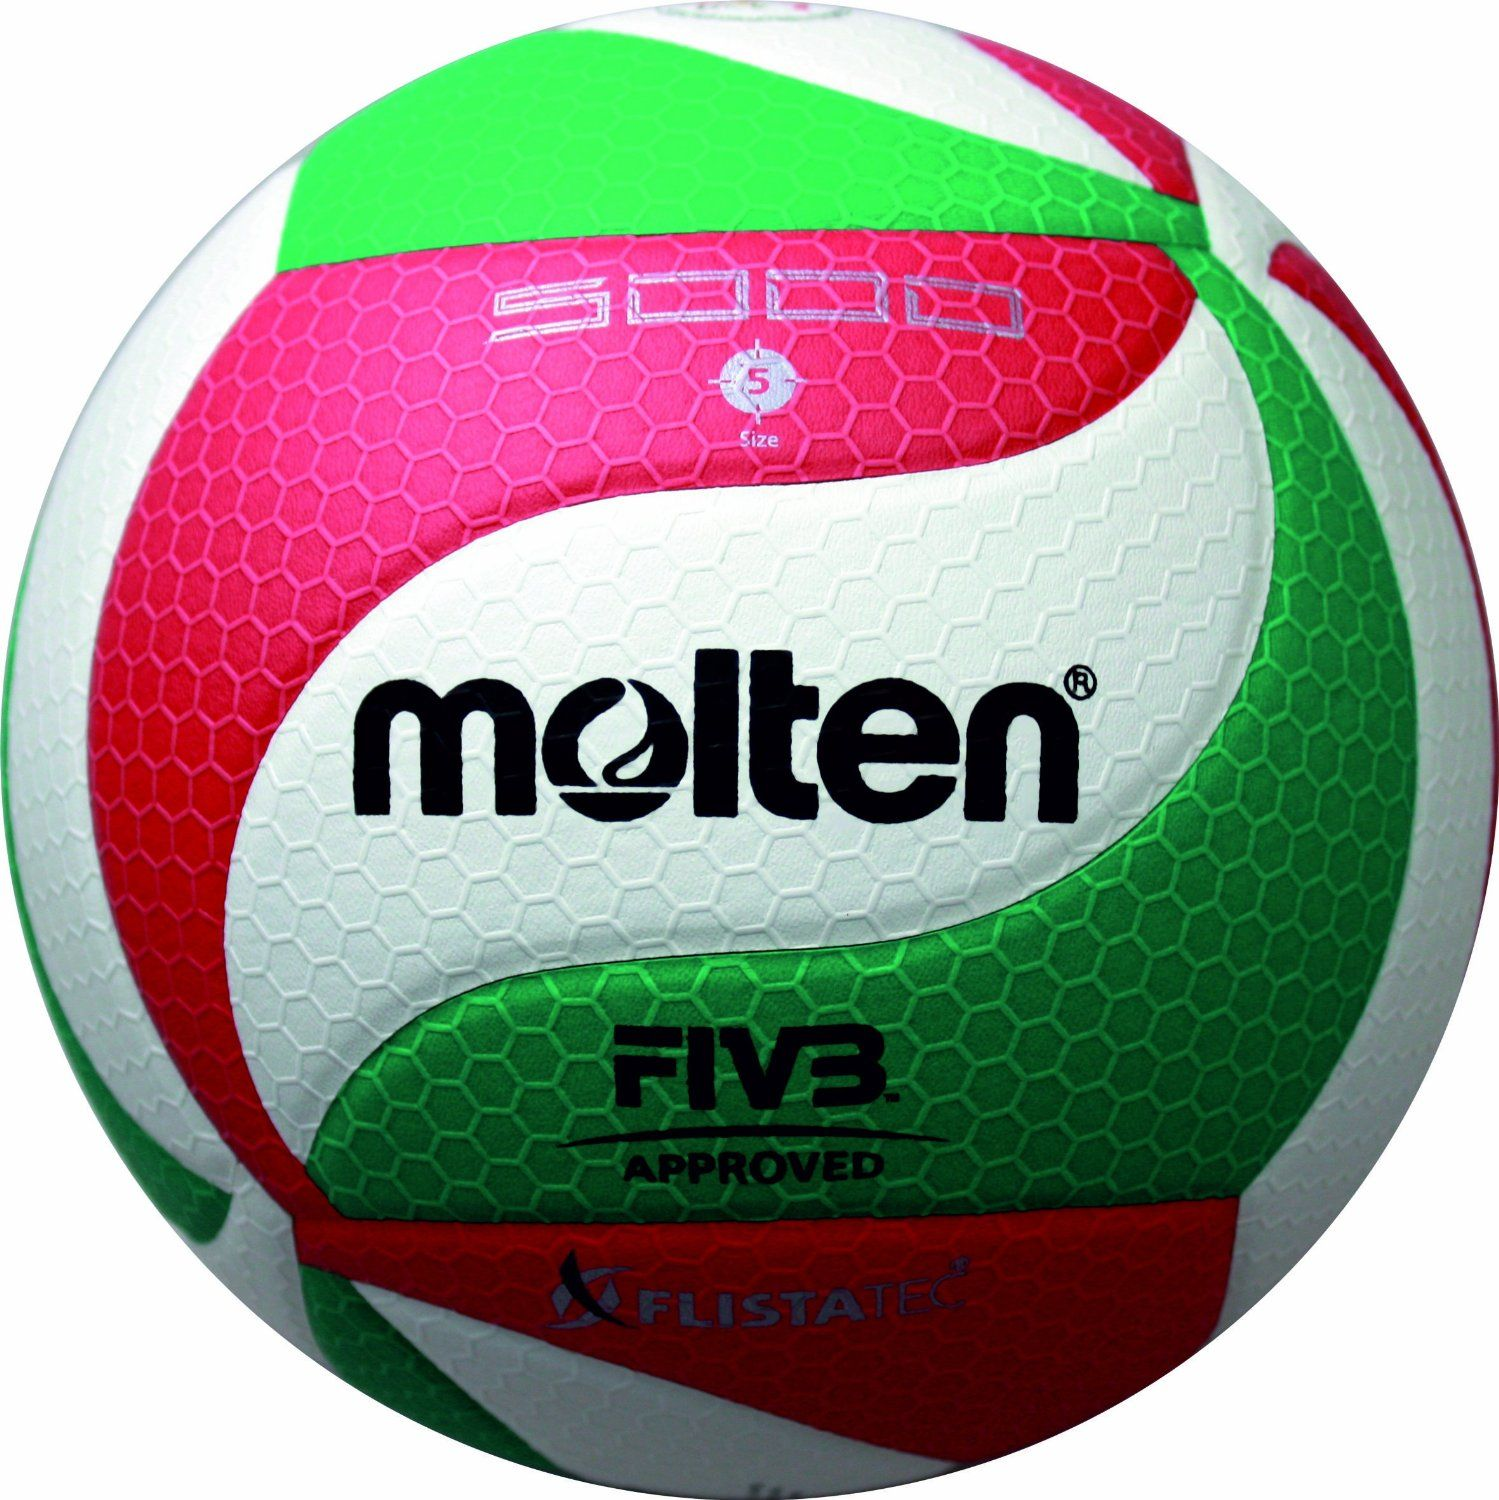 Molten Volleyball 5 White Green Red Amazon Co Uk Sports Outdoors Molten Volleyball Volleyball Volleyballs